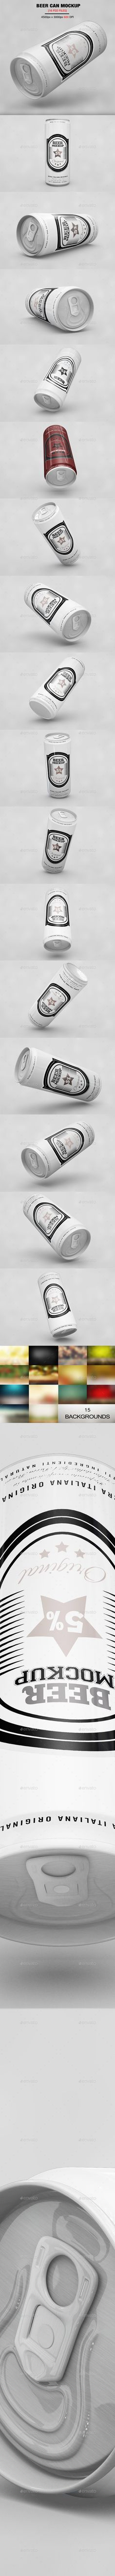 Beer Can MockUp - Product #Mock-Ups #Graphics Download here: https://graphicriver.net/item/beer-can-mockup/20053290?ref=alena994